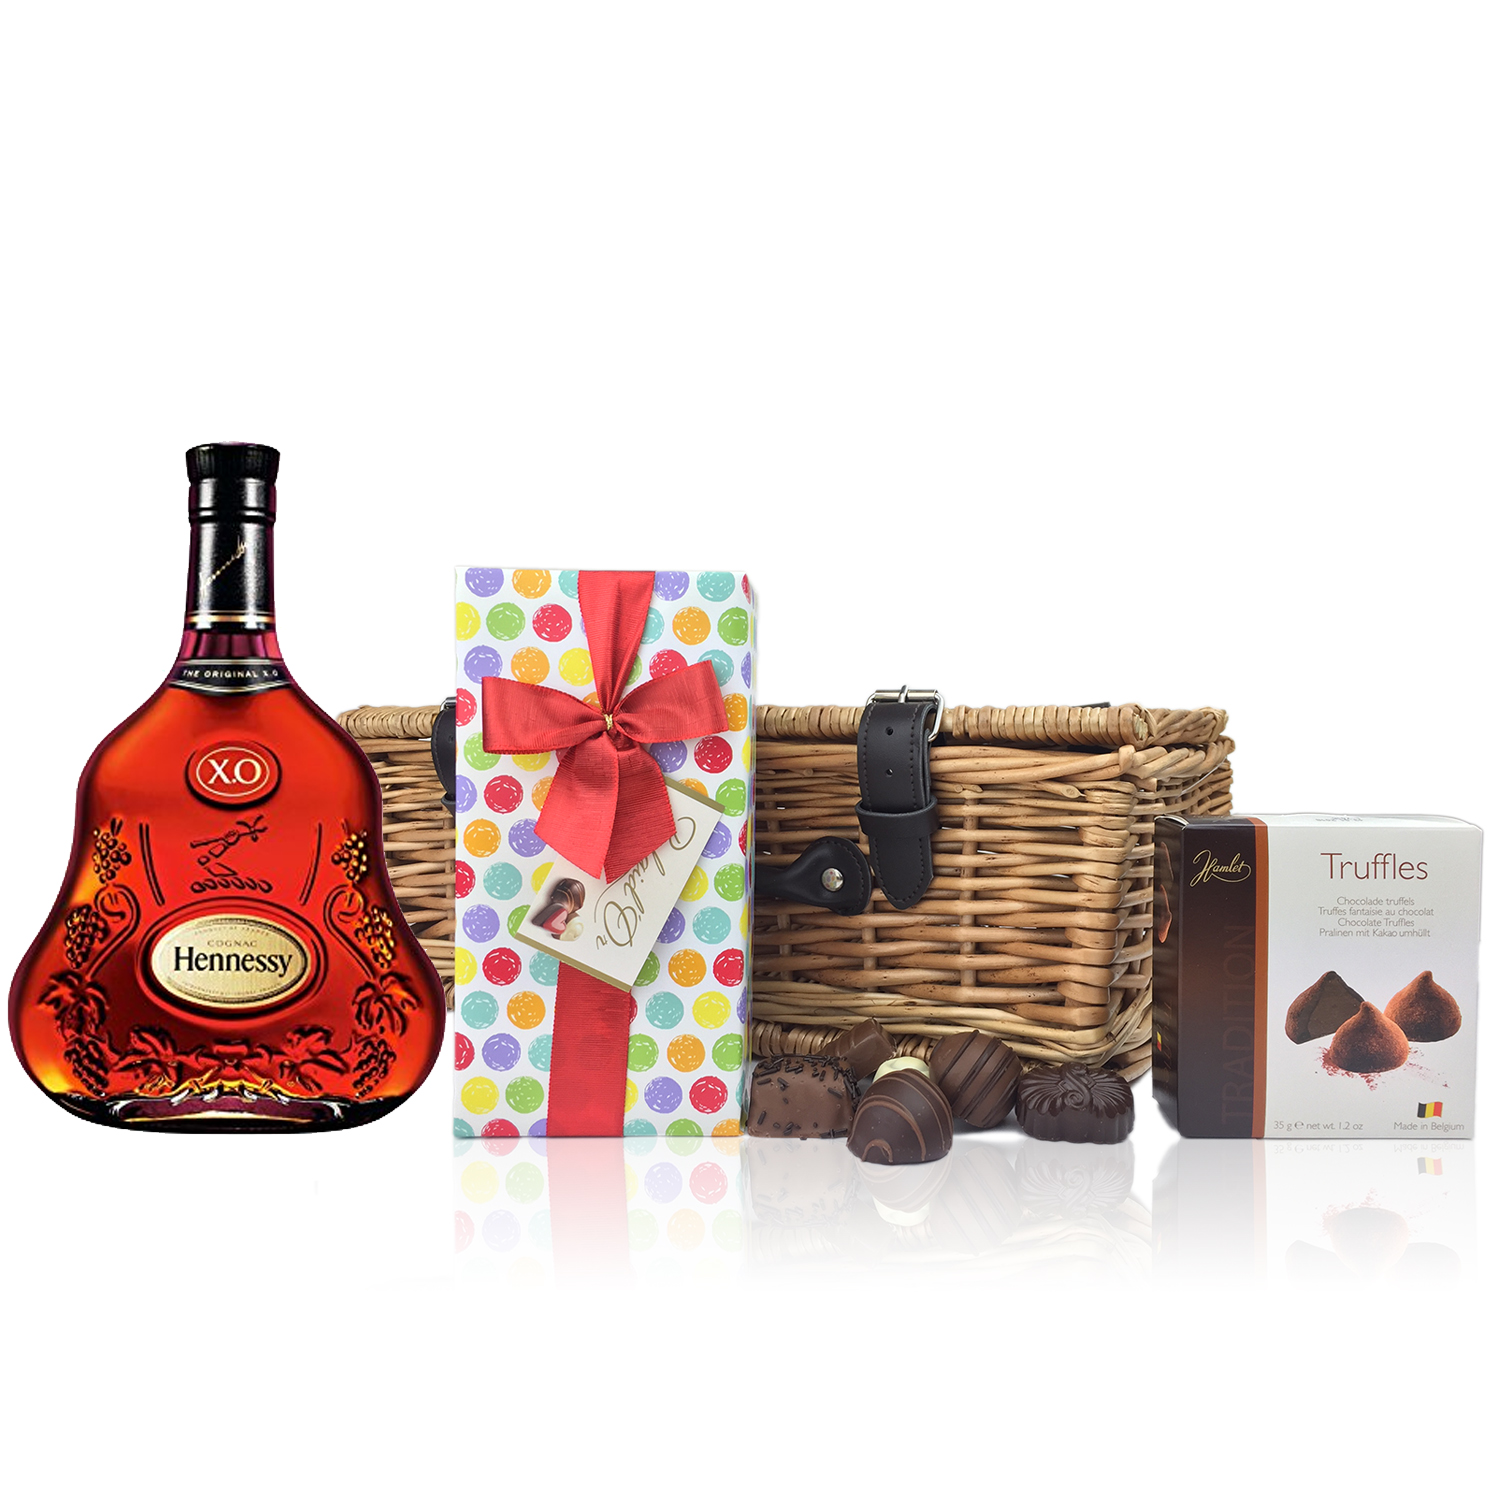 Hennessy 70cl X.O. Cognac and Chocolates Hamper A delightful gift of Hennessy 70cl X.O. along with ...